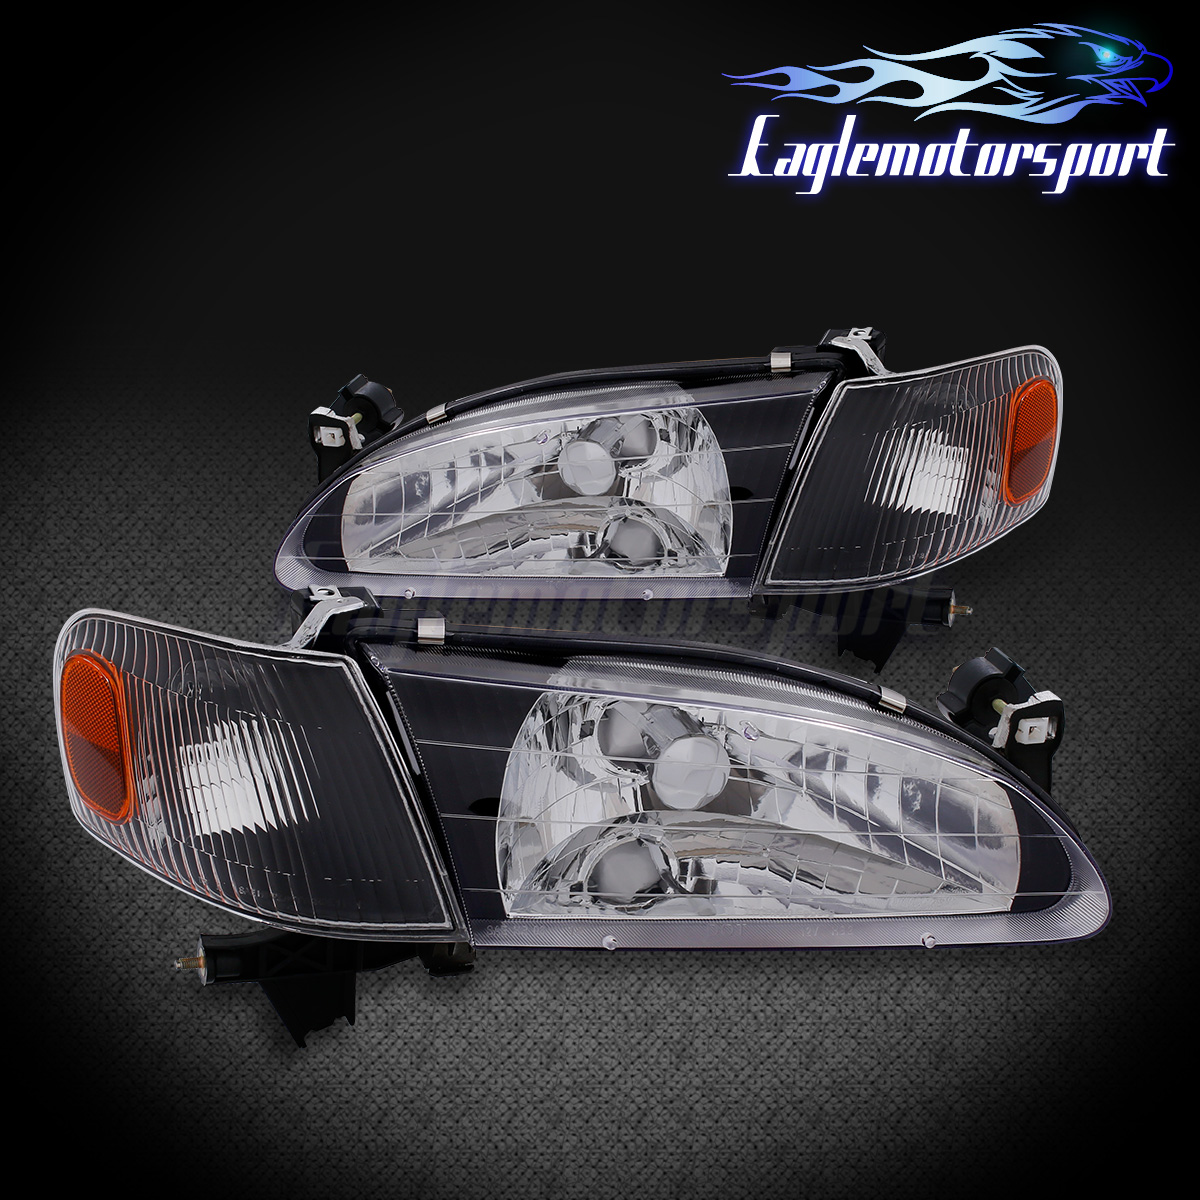 Details About For 1998 1999 2000 Toyota Corolla Black Factory Style Replacement Headlights